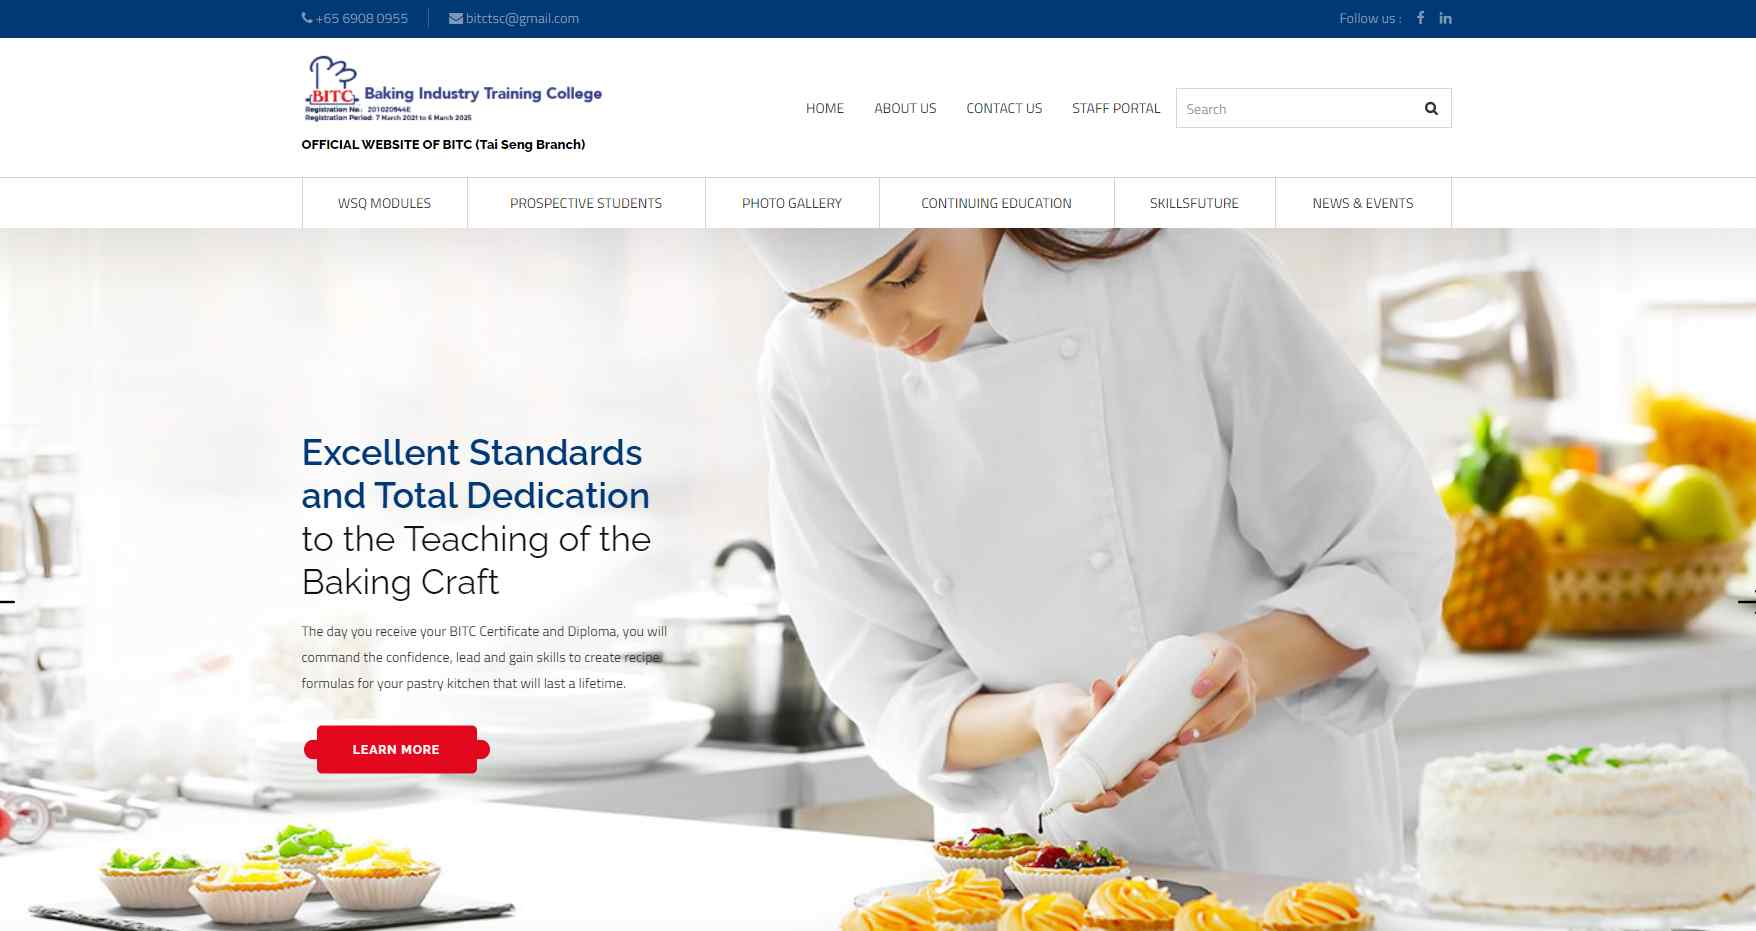 baking industry training Top Culinary Schools in Singapore